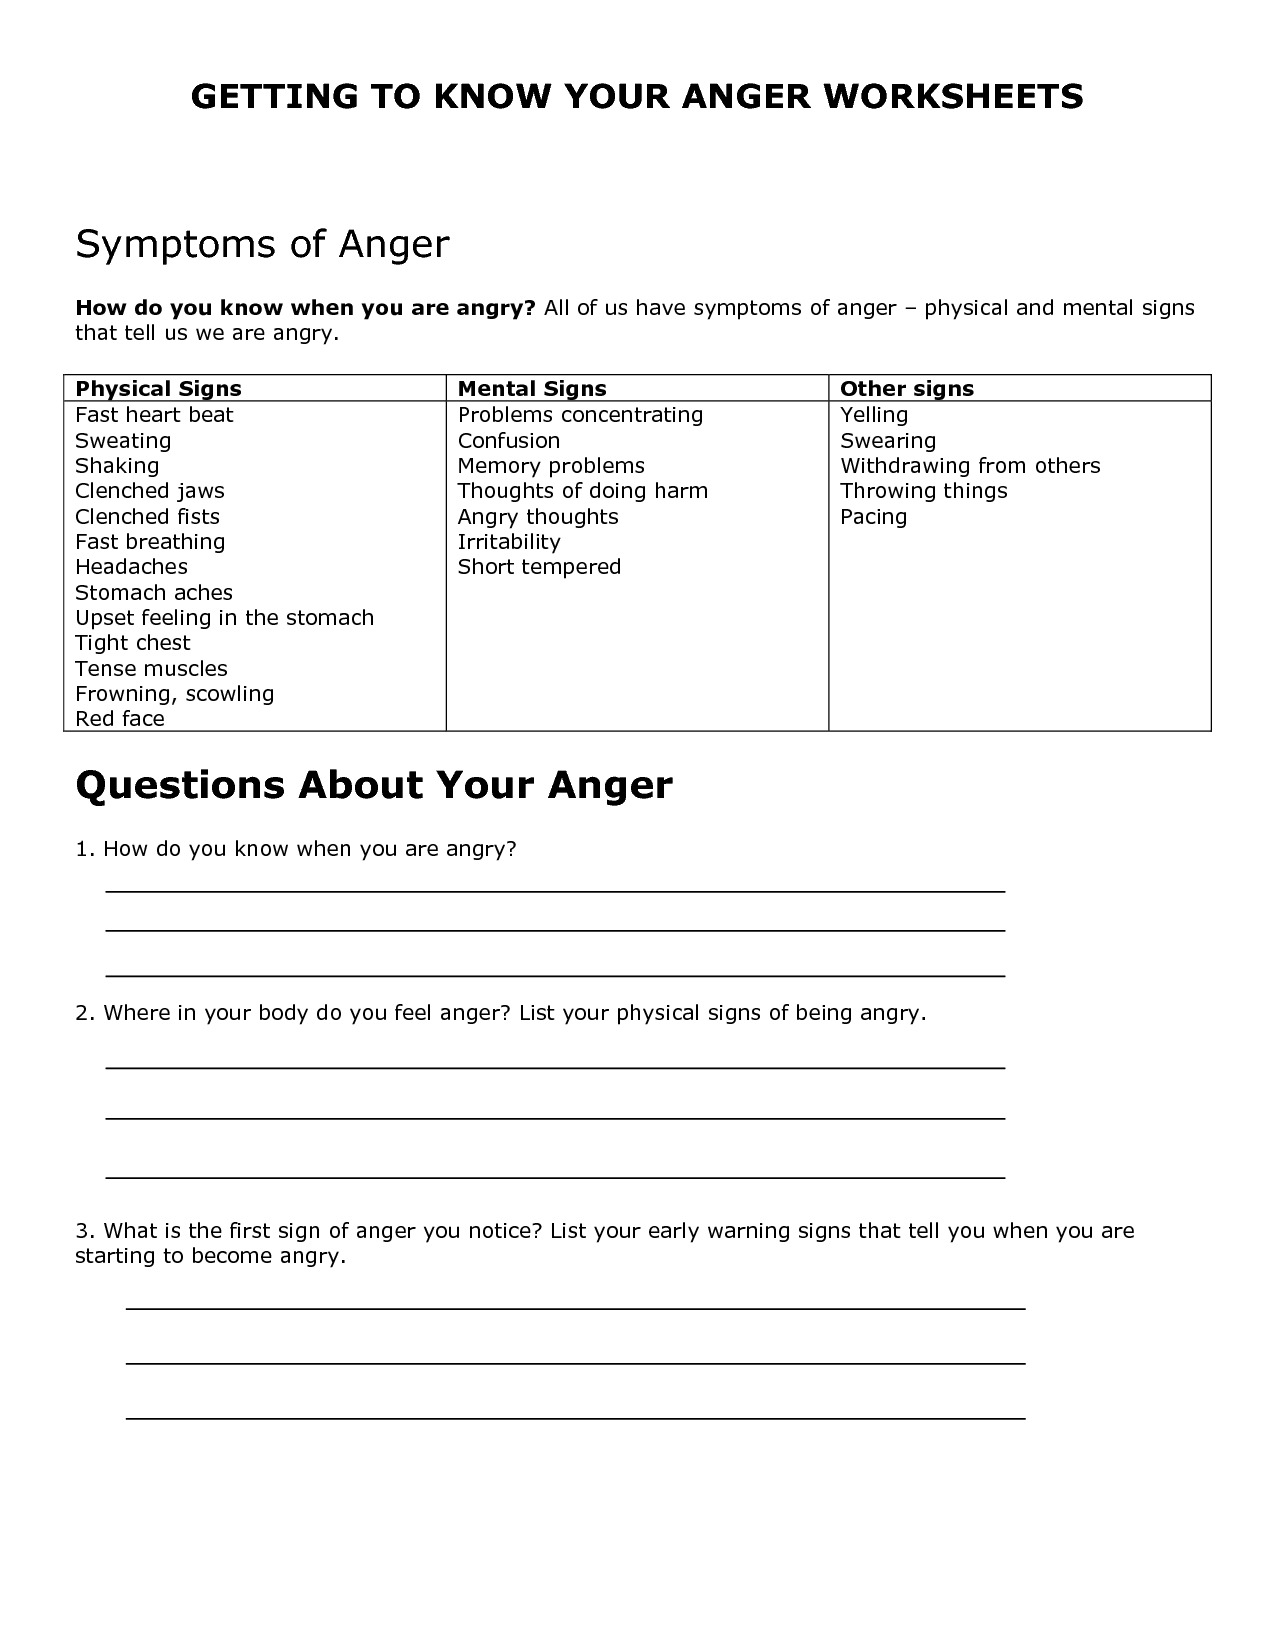 worksheet Anger Diary Worksheet anger worksheets google search creative therapy pinterest search